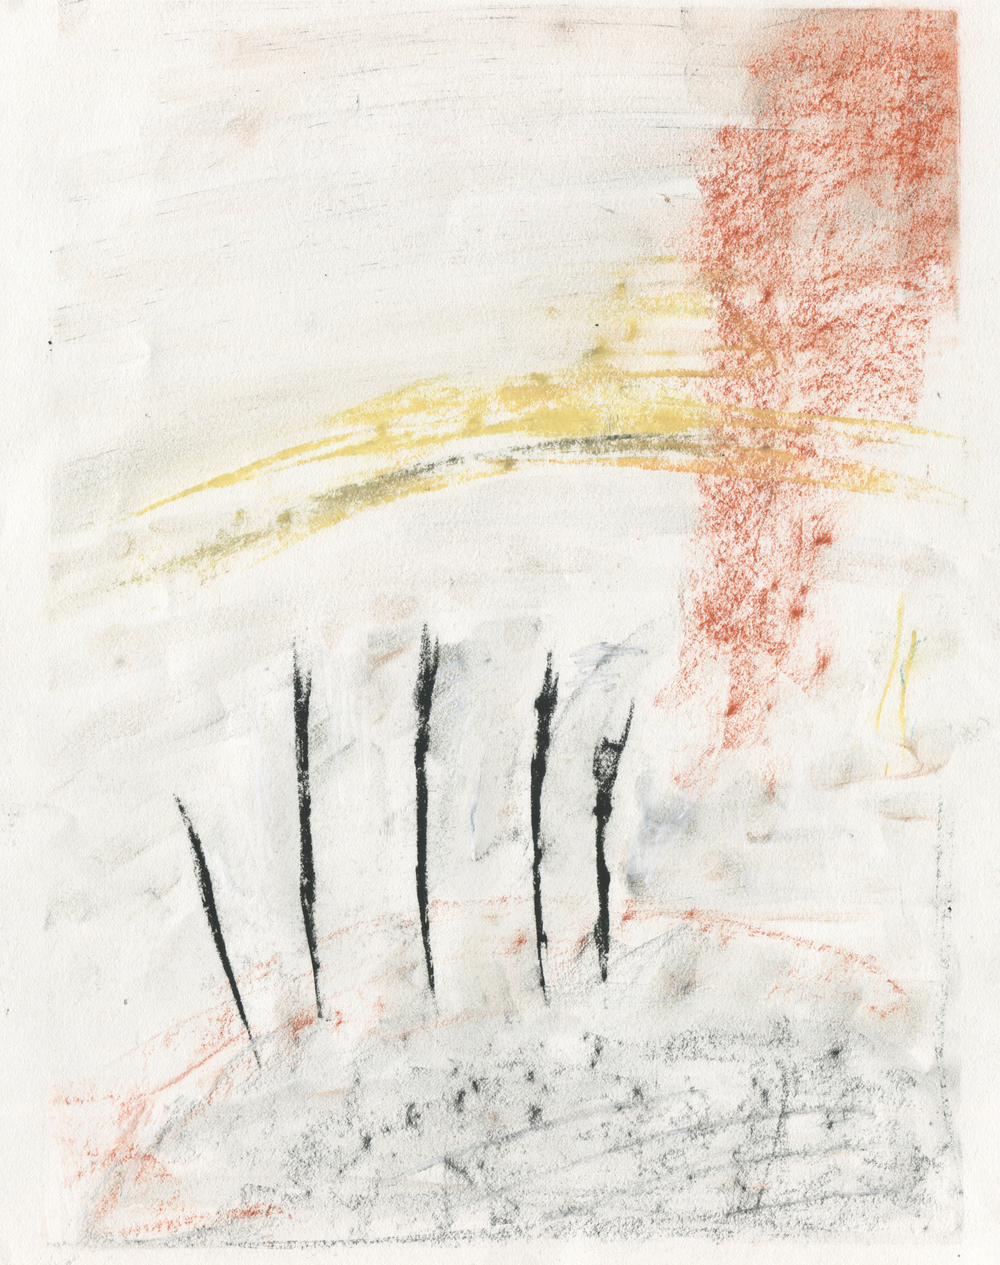 Waiting Whispers , 2016  14 x 11 inches  Chalk Pastel, Charcoal, and Cante Crayon on Paper